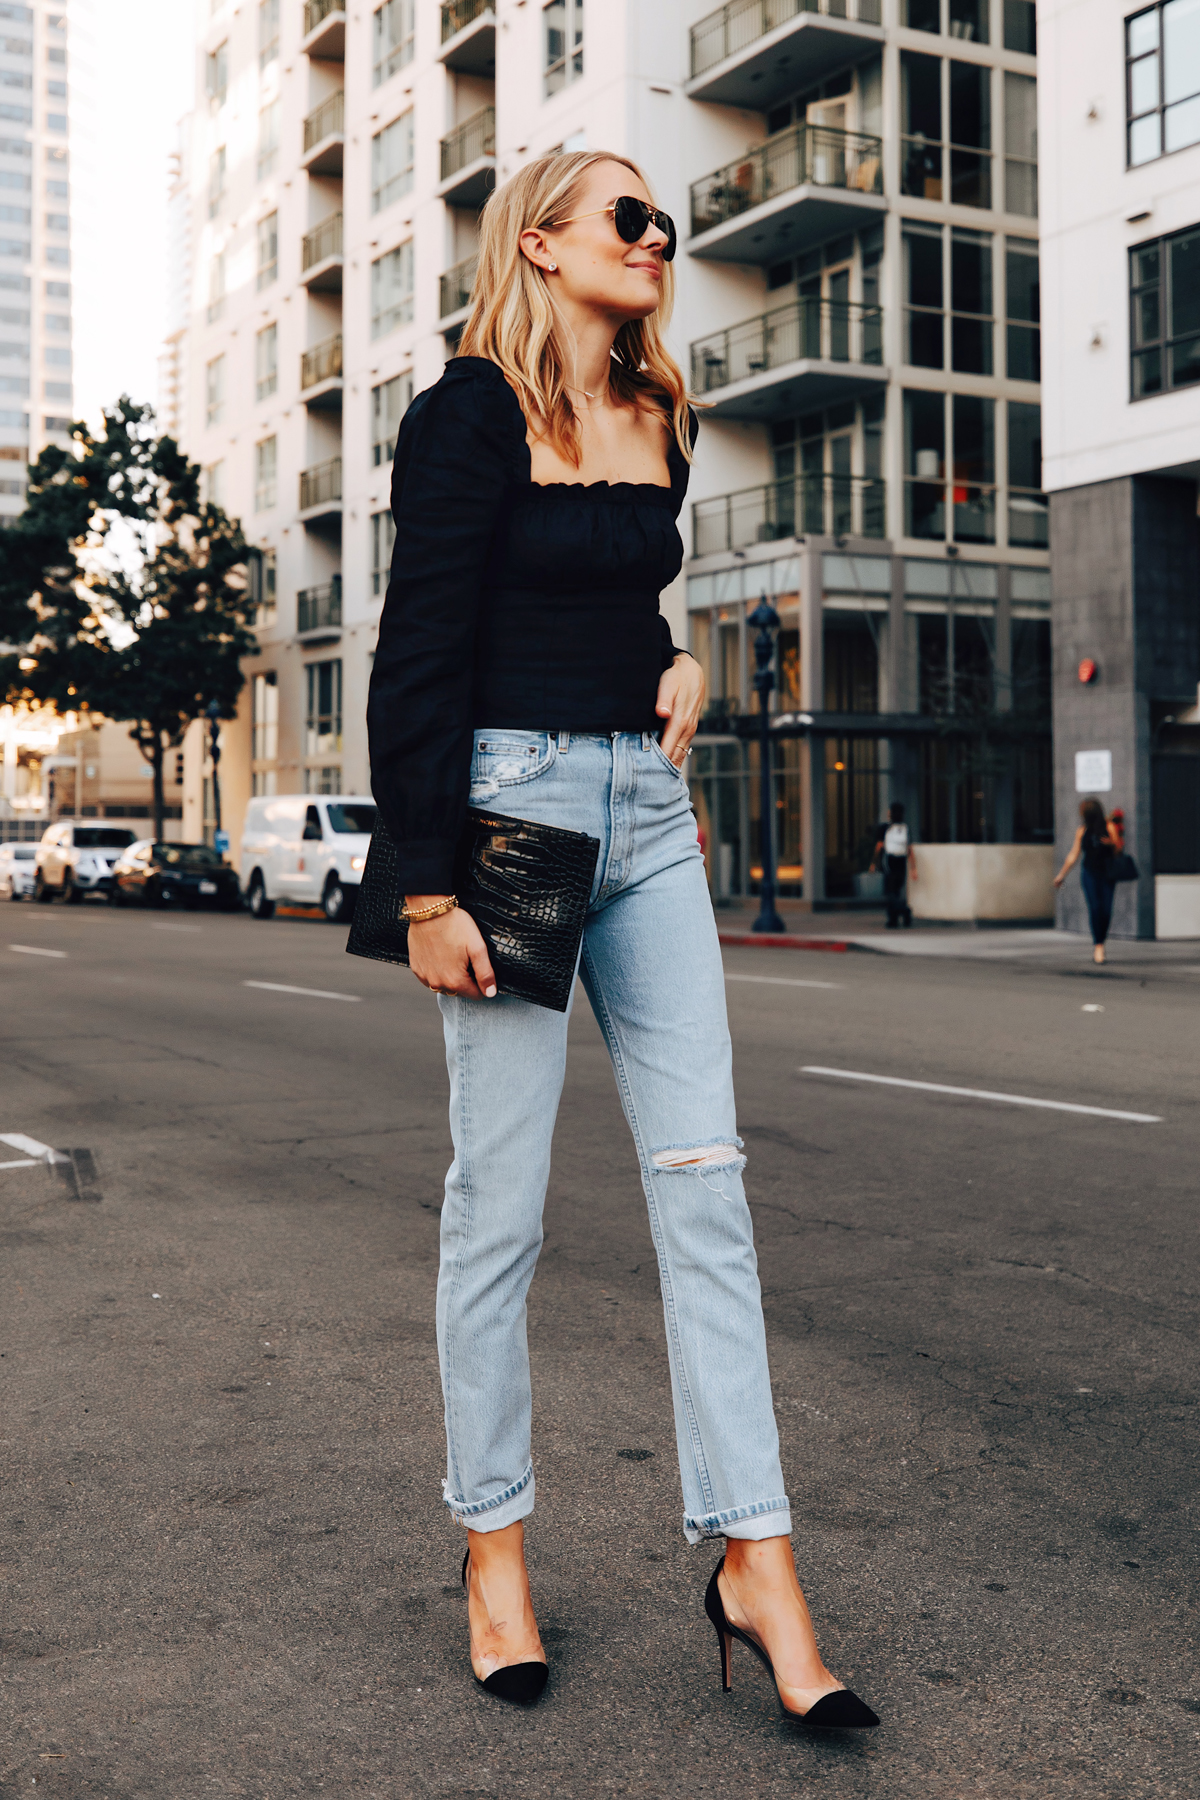 Fashion Jackson Wearing Reformation Black Puff Sleeve Top Reformation Ripped Jeans Gianvito Rossi Black Plexi Pumps Givenchy Antigona Black Clutch